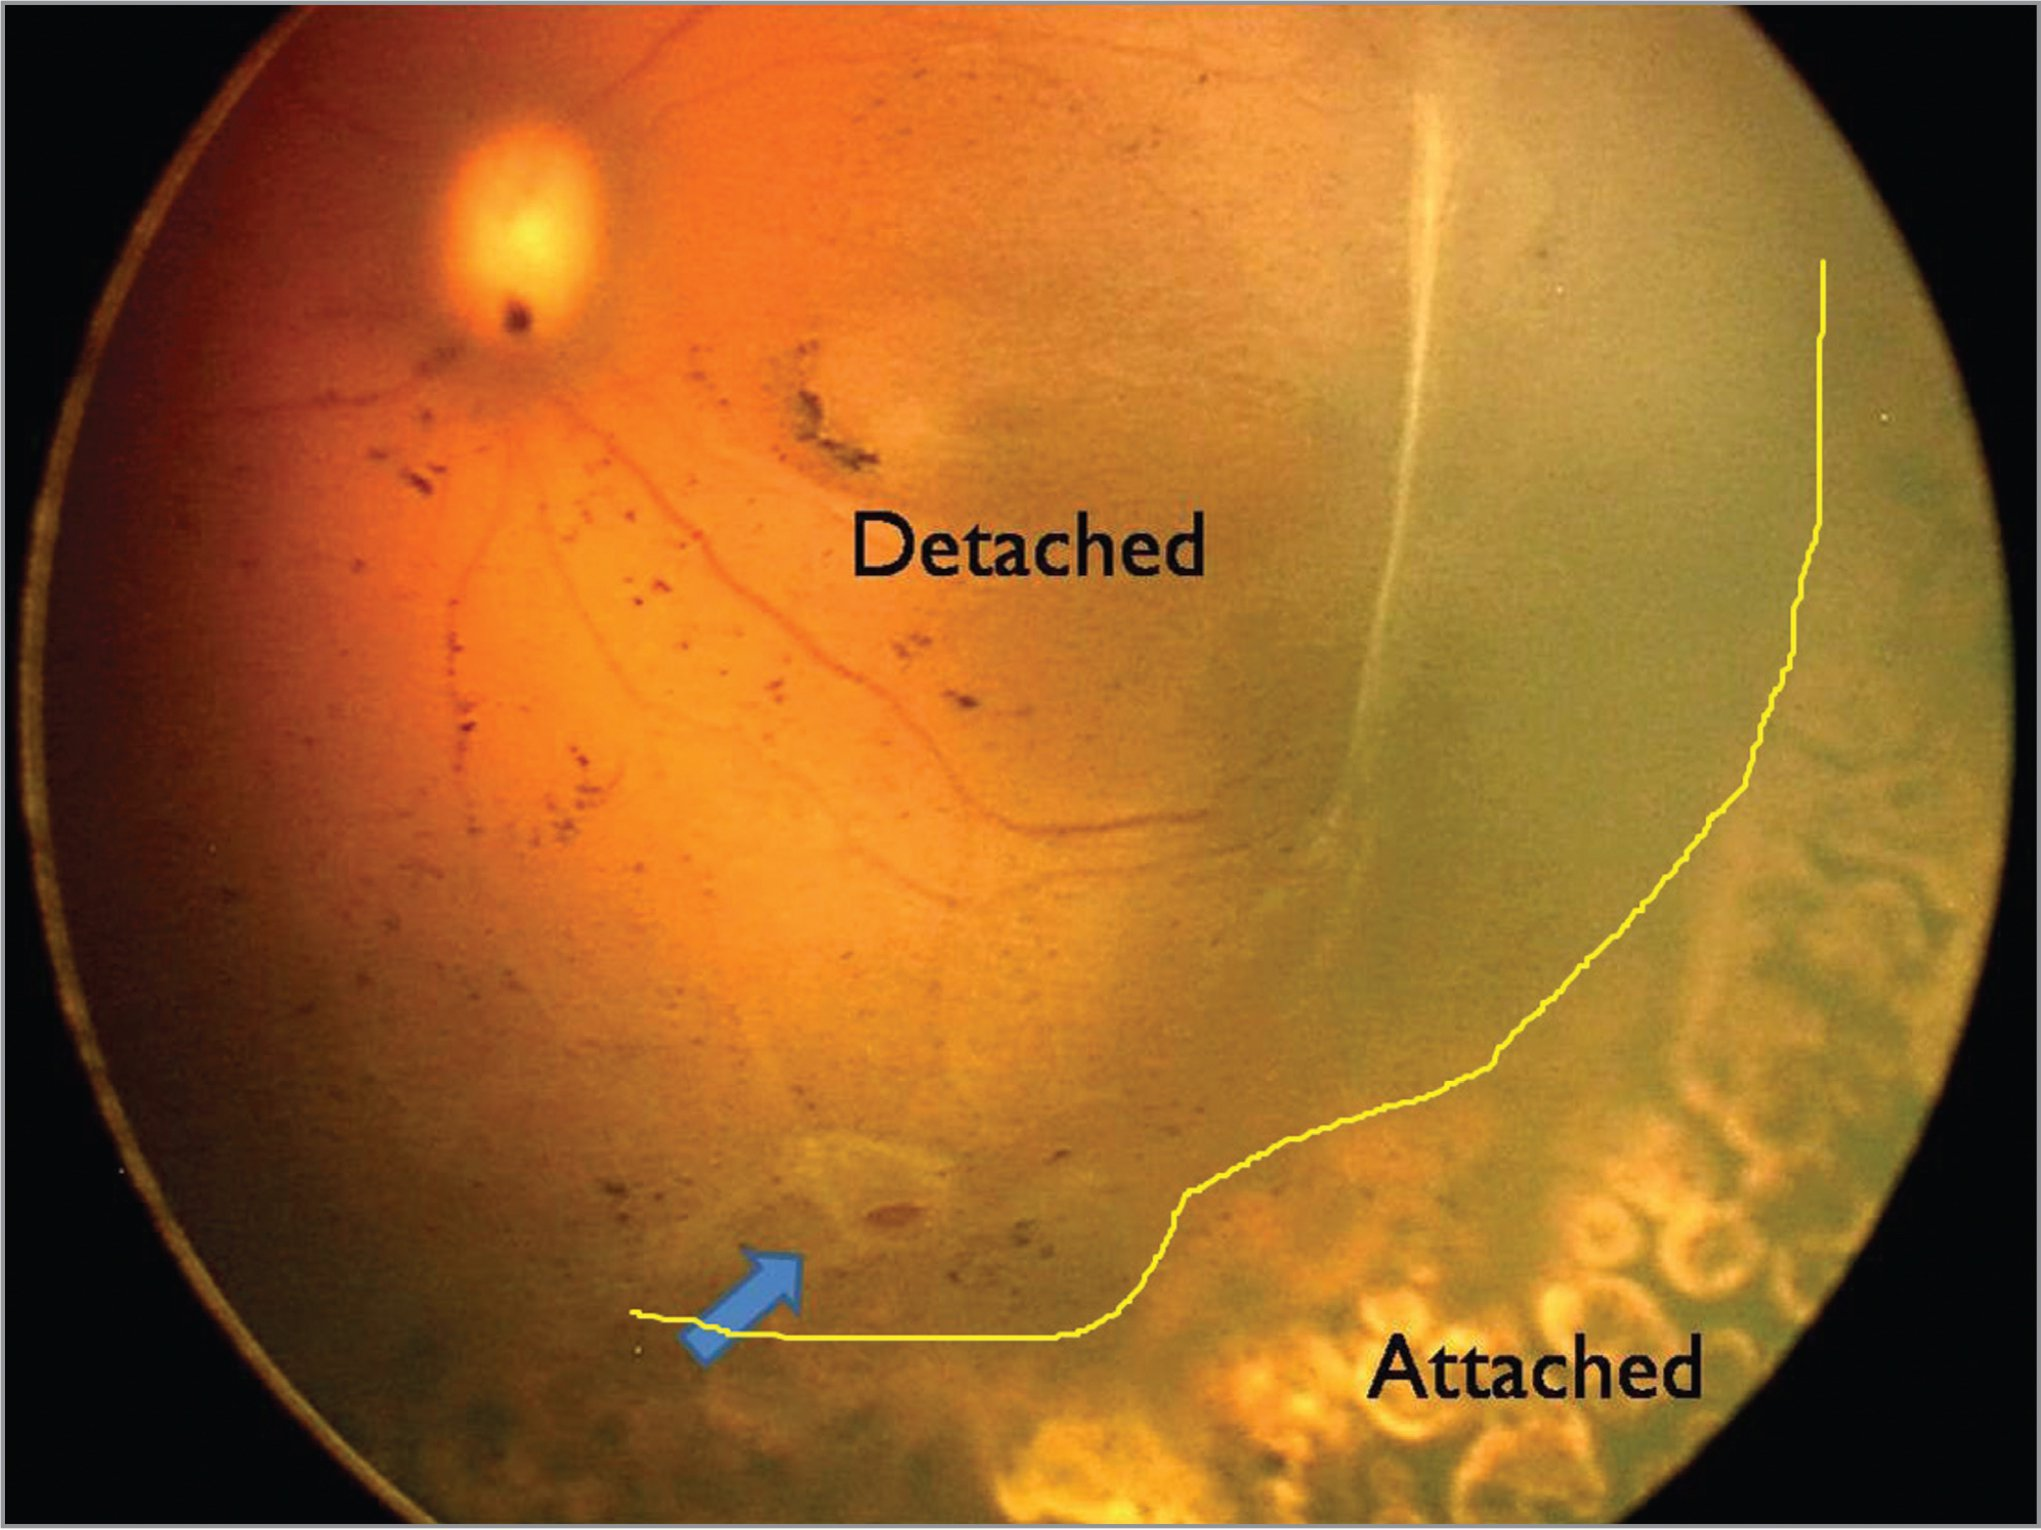 Fundus picture of the left eye showing a retinal break adjacent to a preretinal membrane (blue arrow) and a yellow line demarcating the detached (posterior pole) and attached retina.